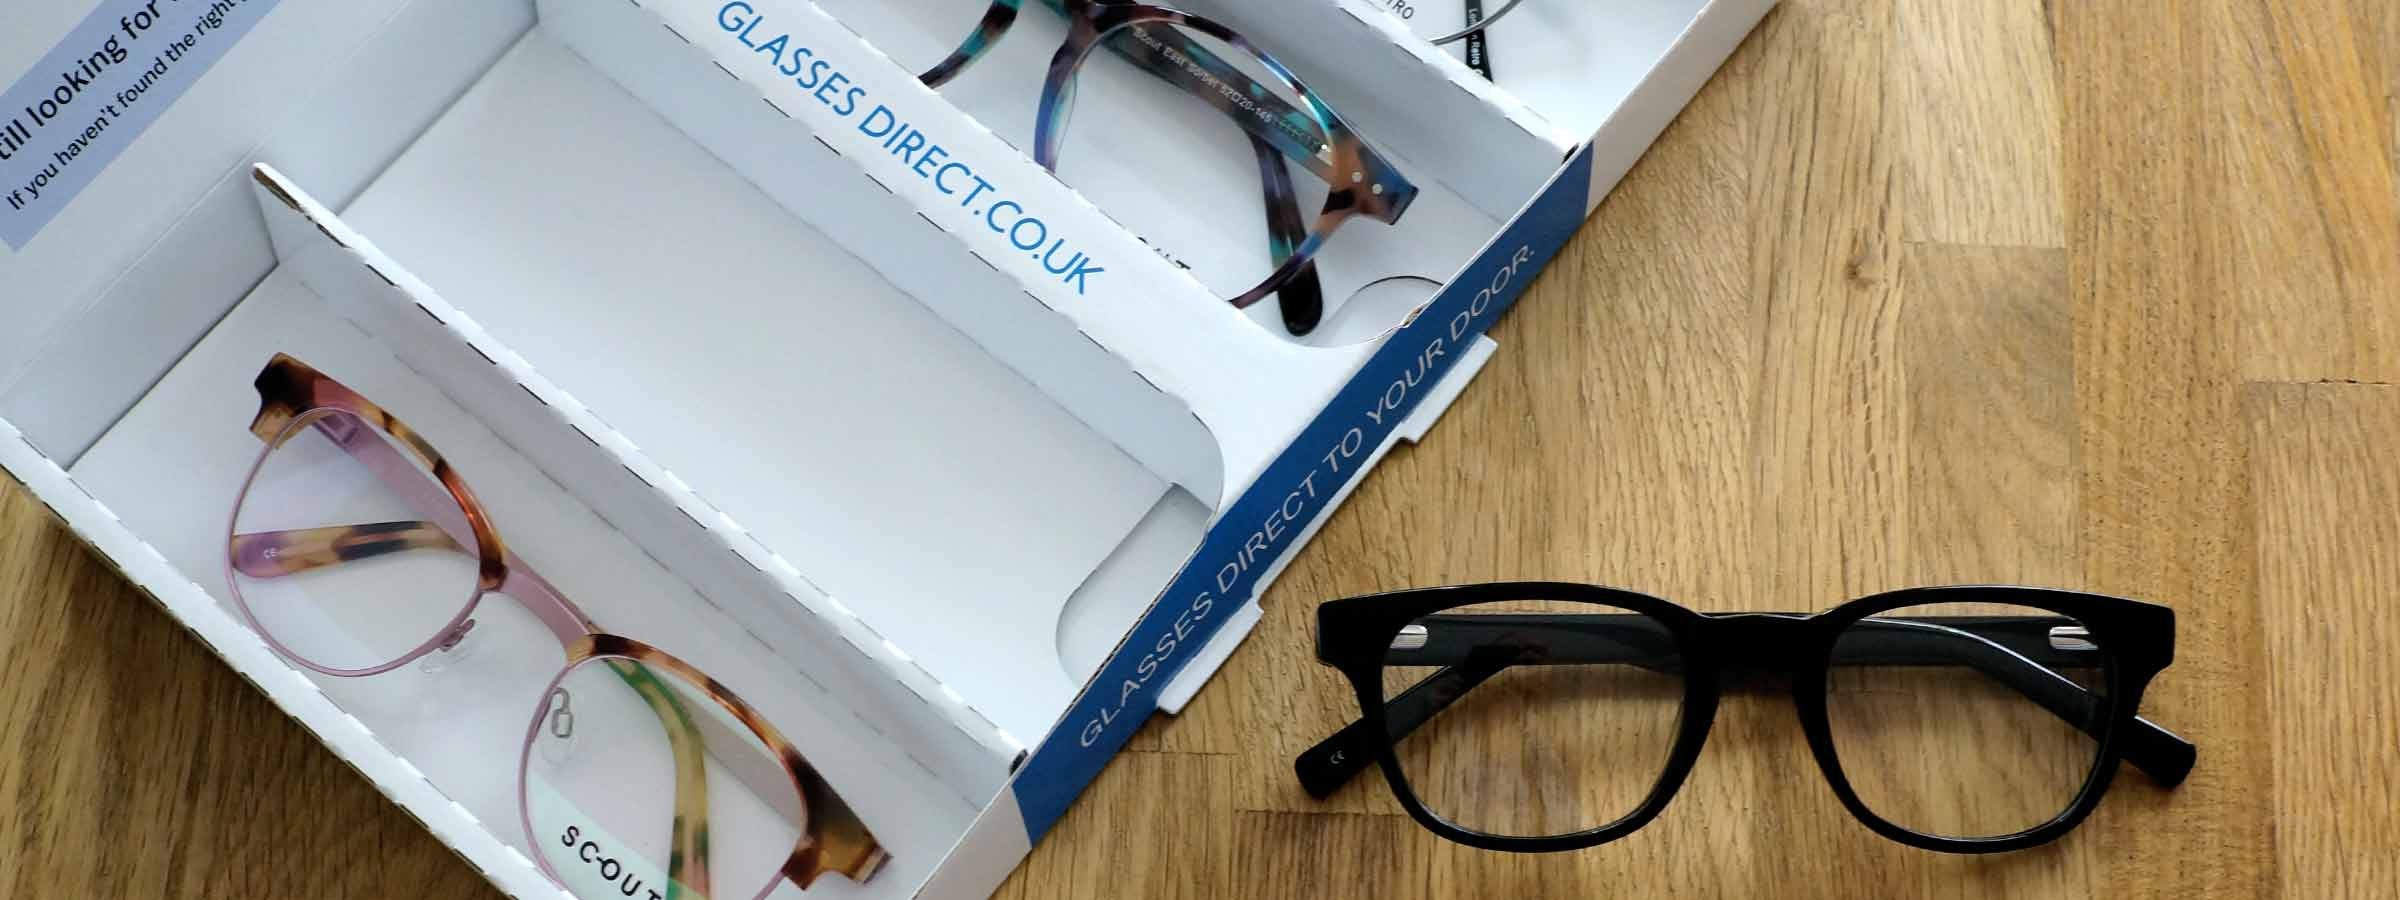 Frames in a Glasses Direct home trial box